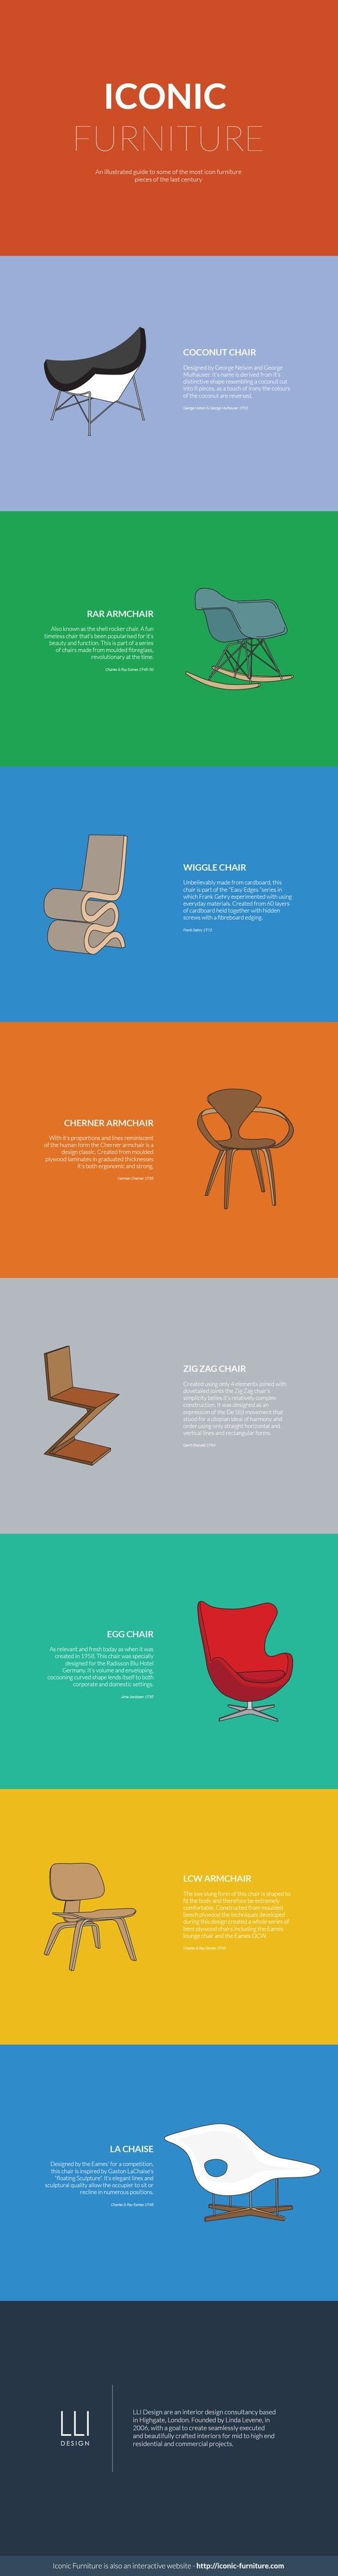 Iconic Furniture - An illustrated guide to some of the most iconic furniture pieces of the past century. Iconic Furniture is also an interactive website - http://iconic-furniture.com/